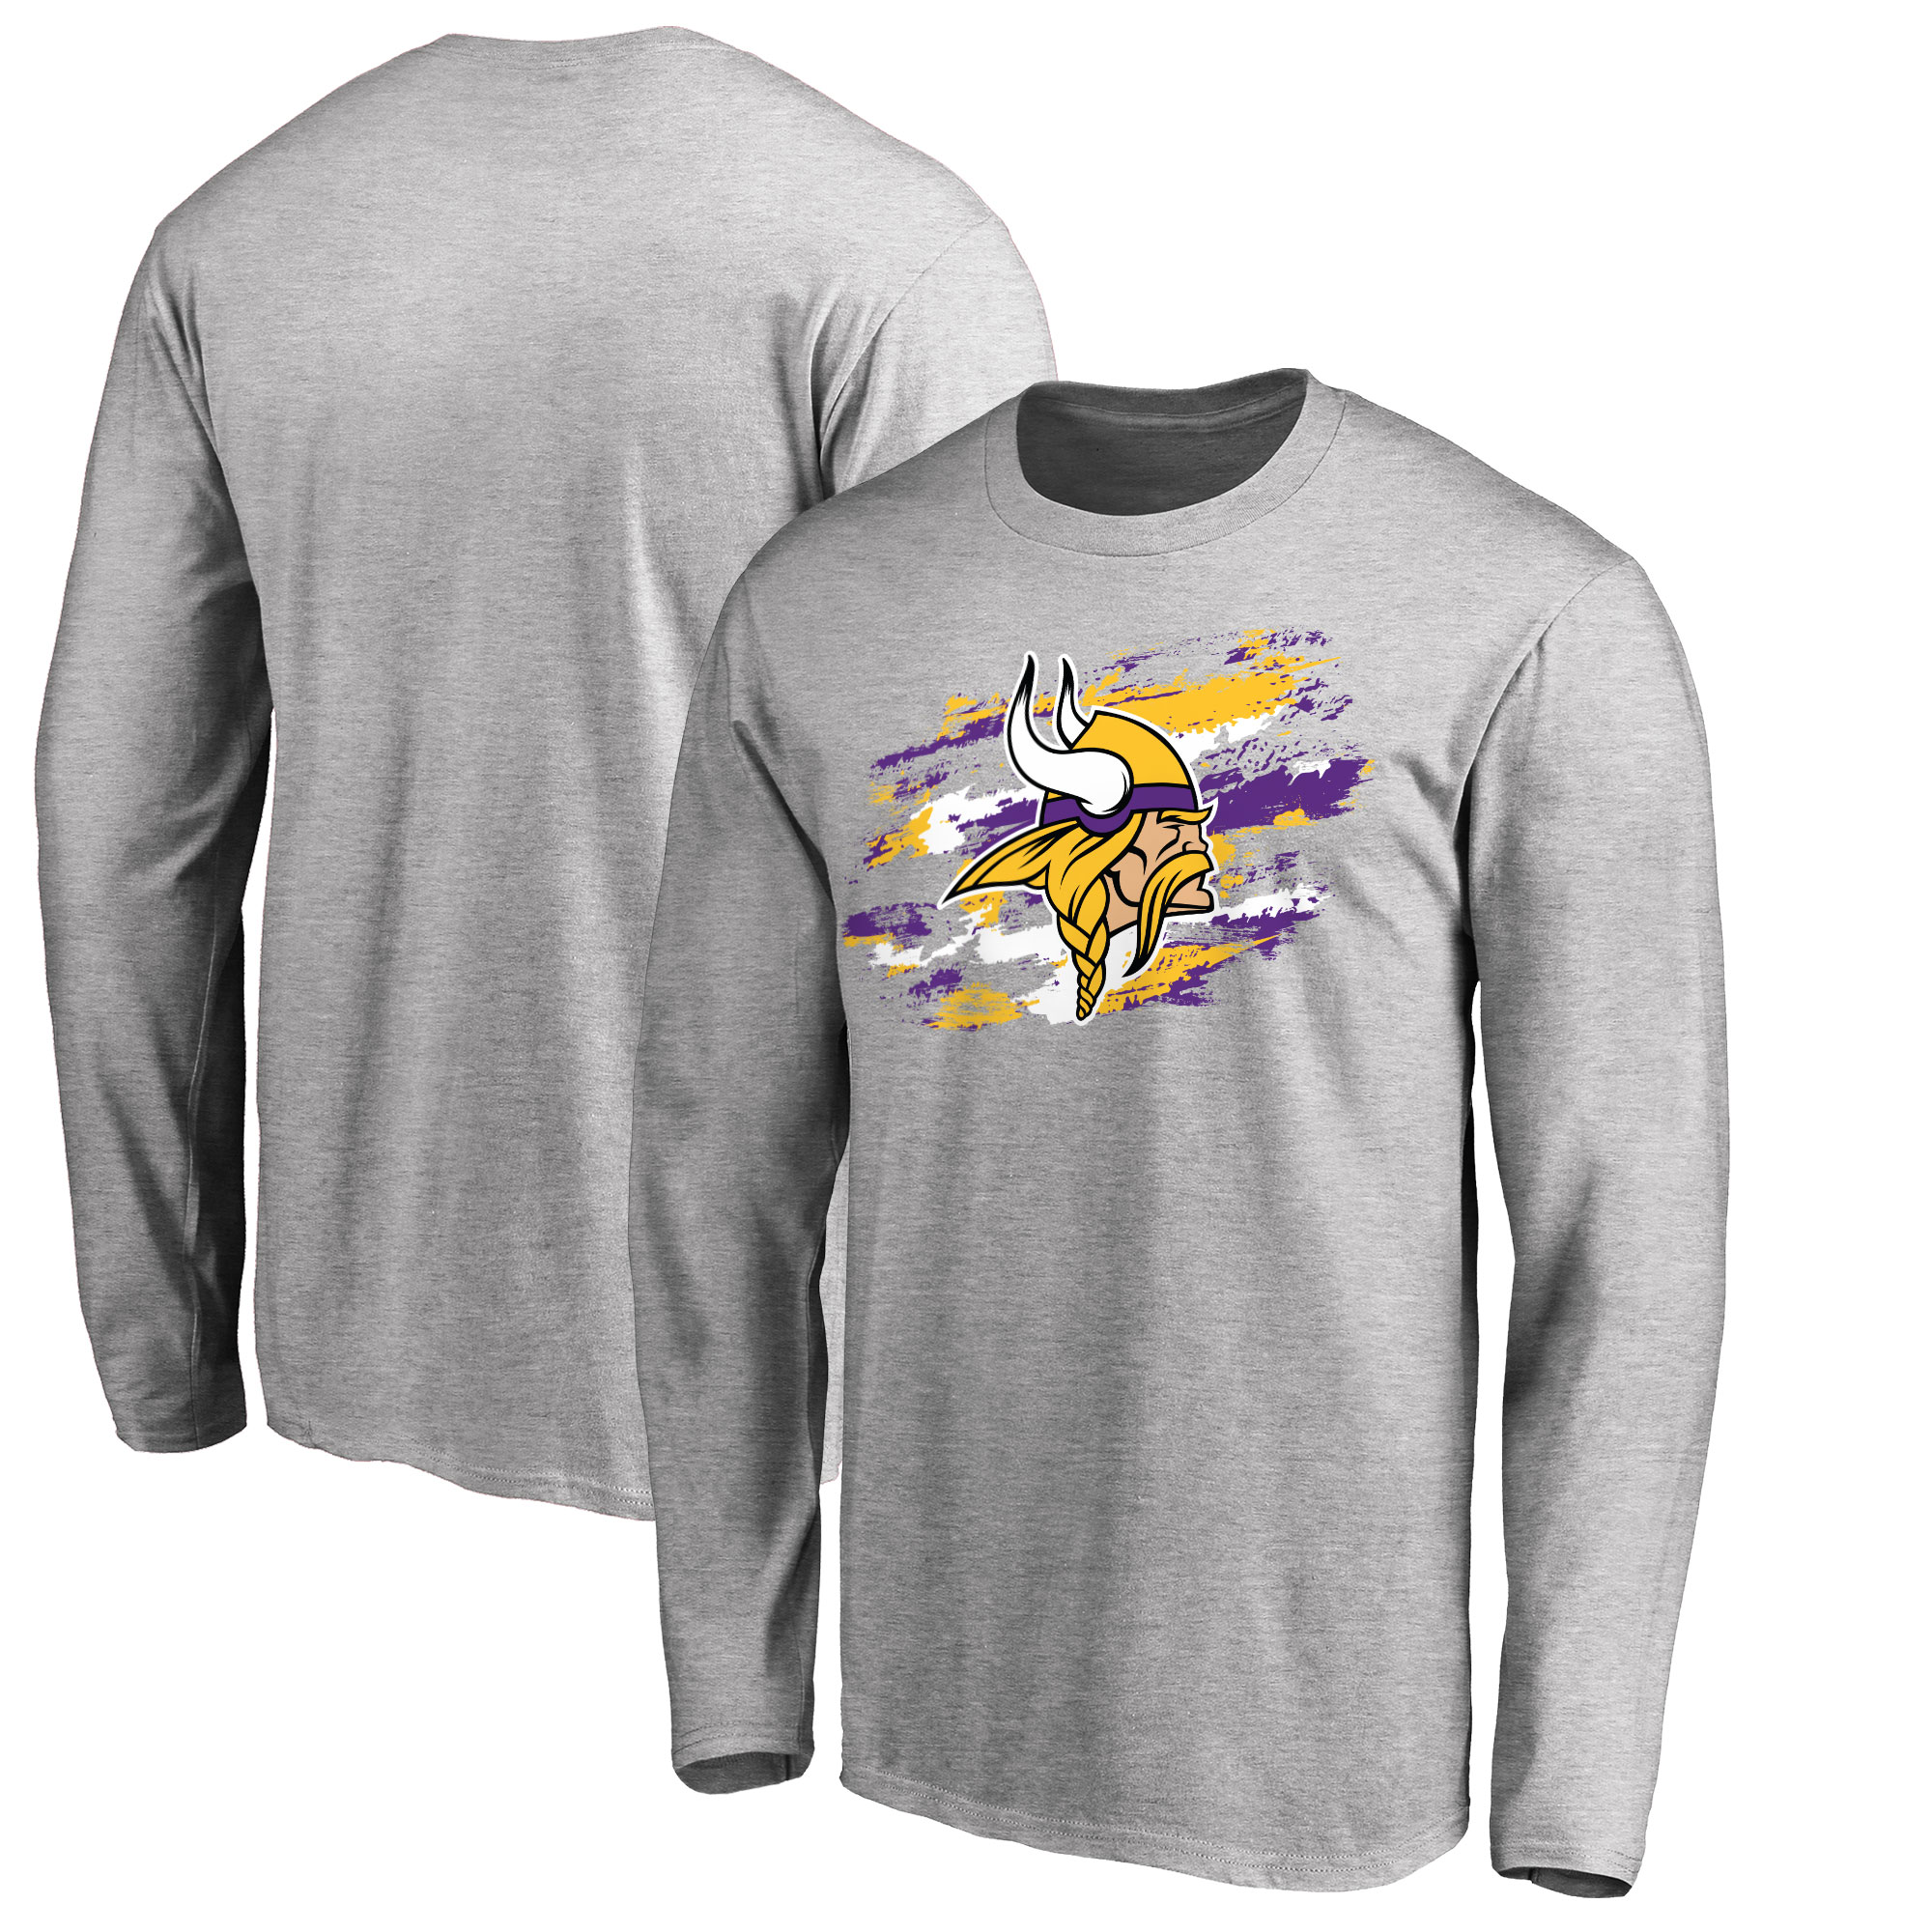 Men's NFL Pro Line Heathered Gray Minnesota Vikings True Colors Long Sleeve T-Shirt